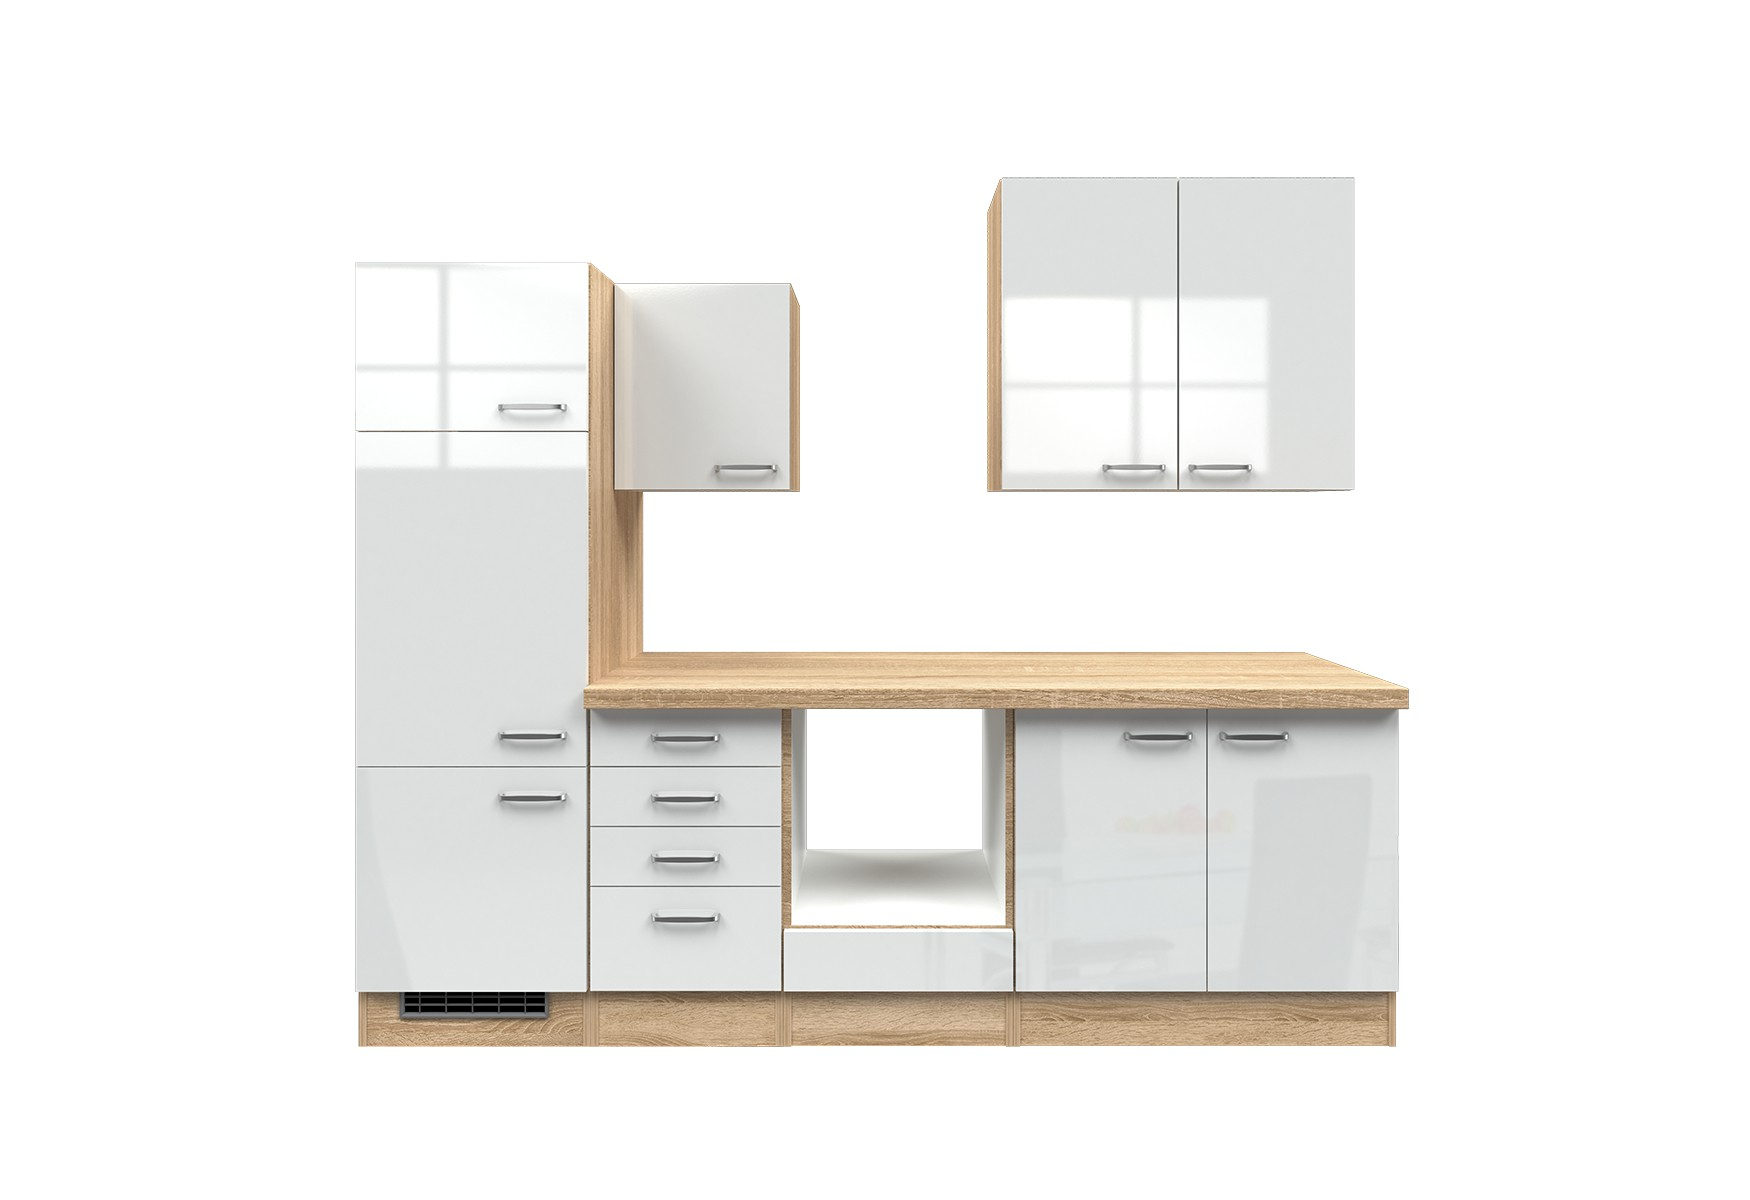 k chenblock venedig k chenzeile k chen leerblock mit auszugschrank 270 cm weiss. Black Bedroom Furniture Sets. Home Design Ideas